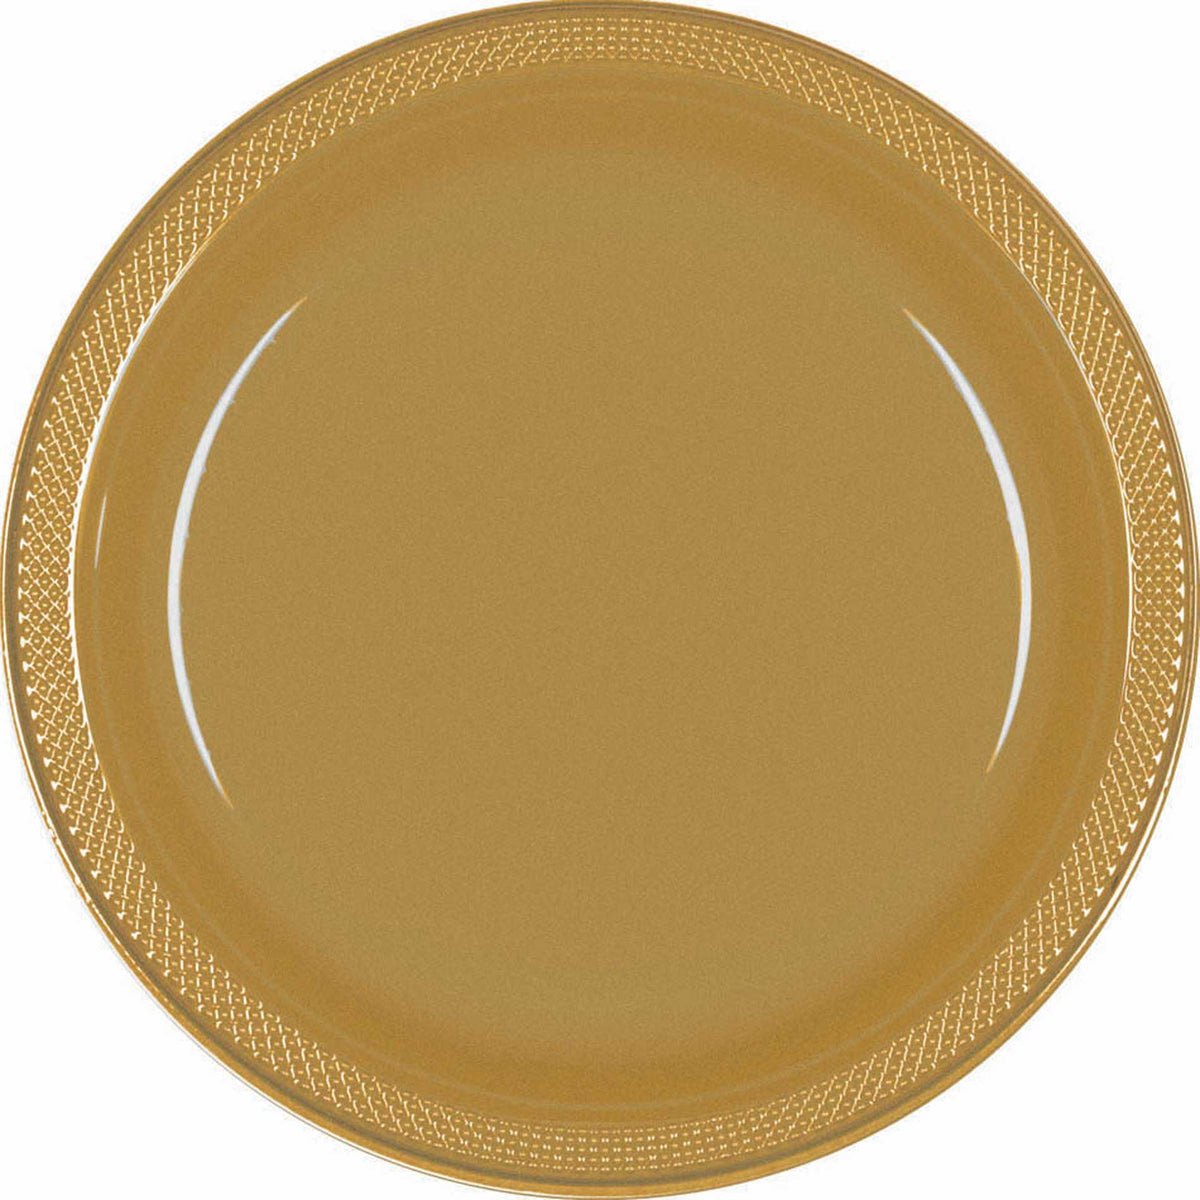 9 Inch Gold Plastic Plates